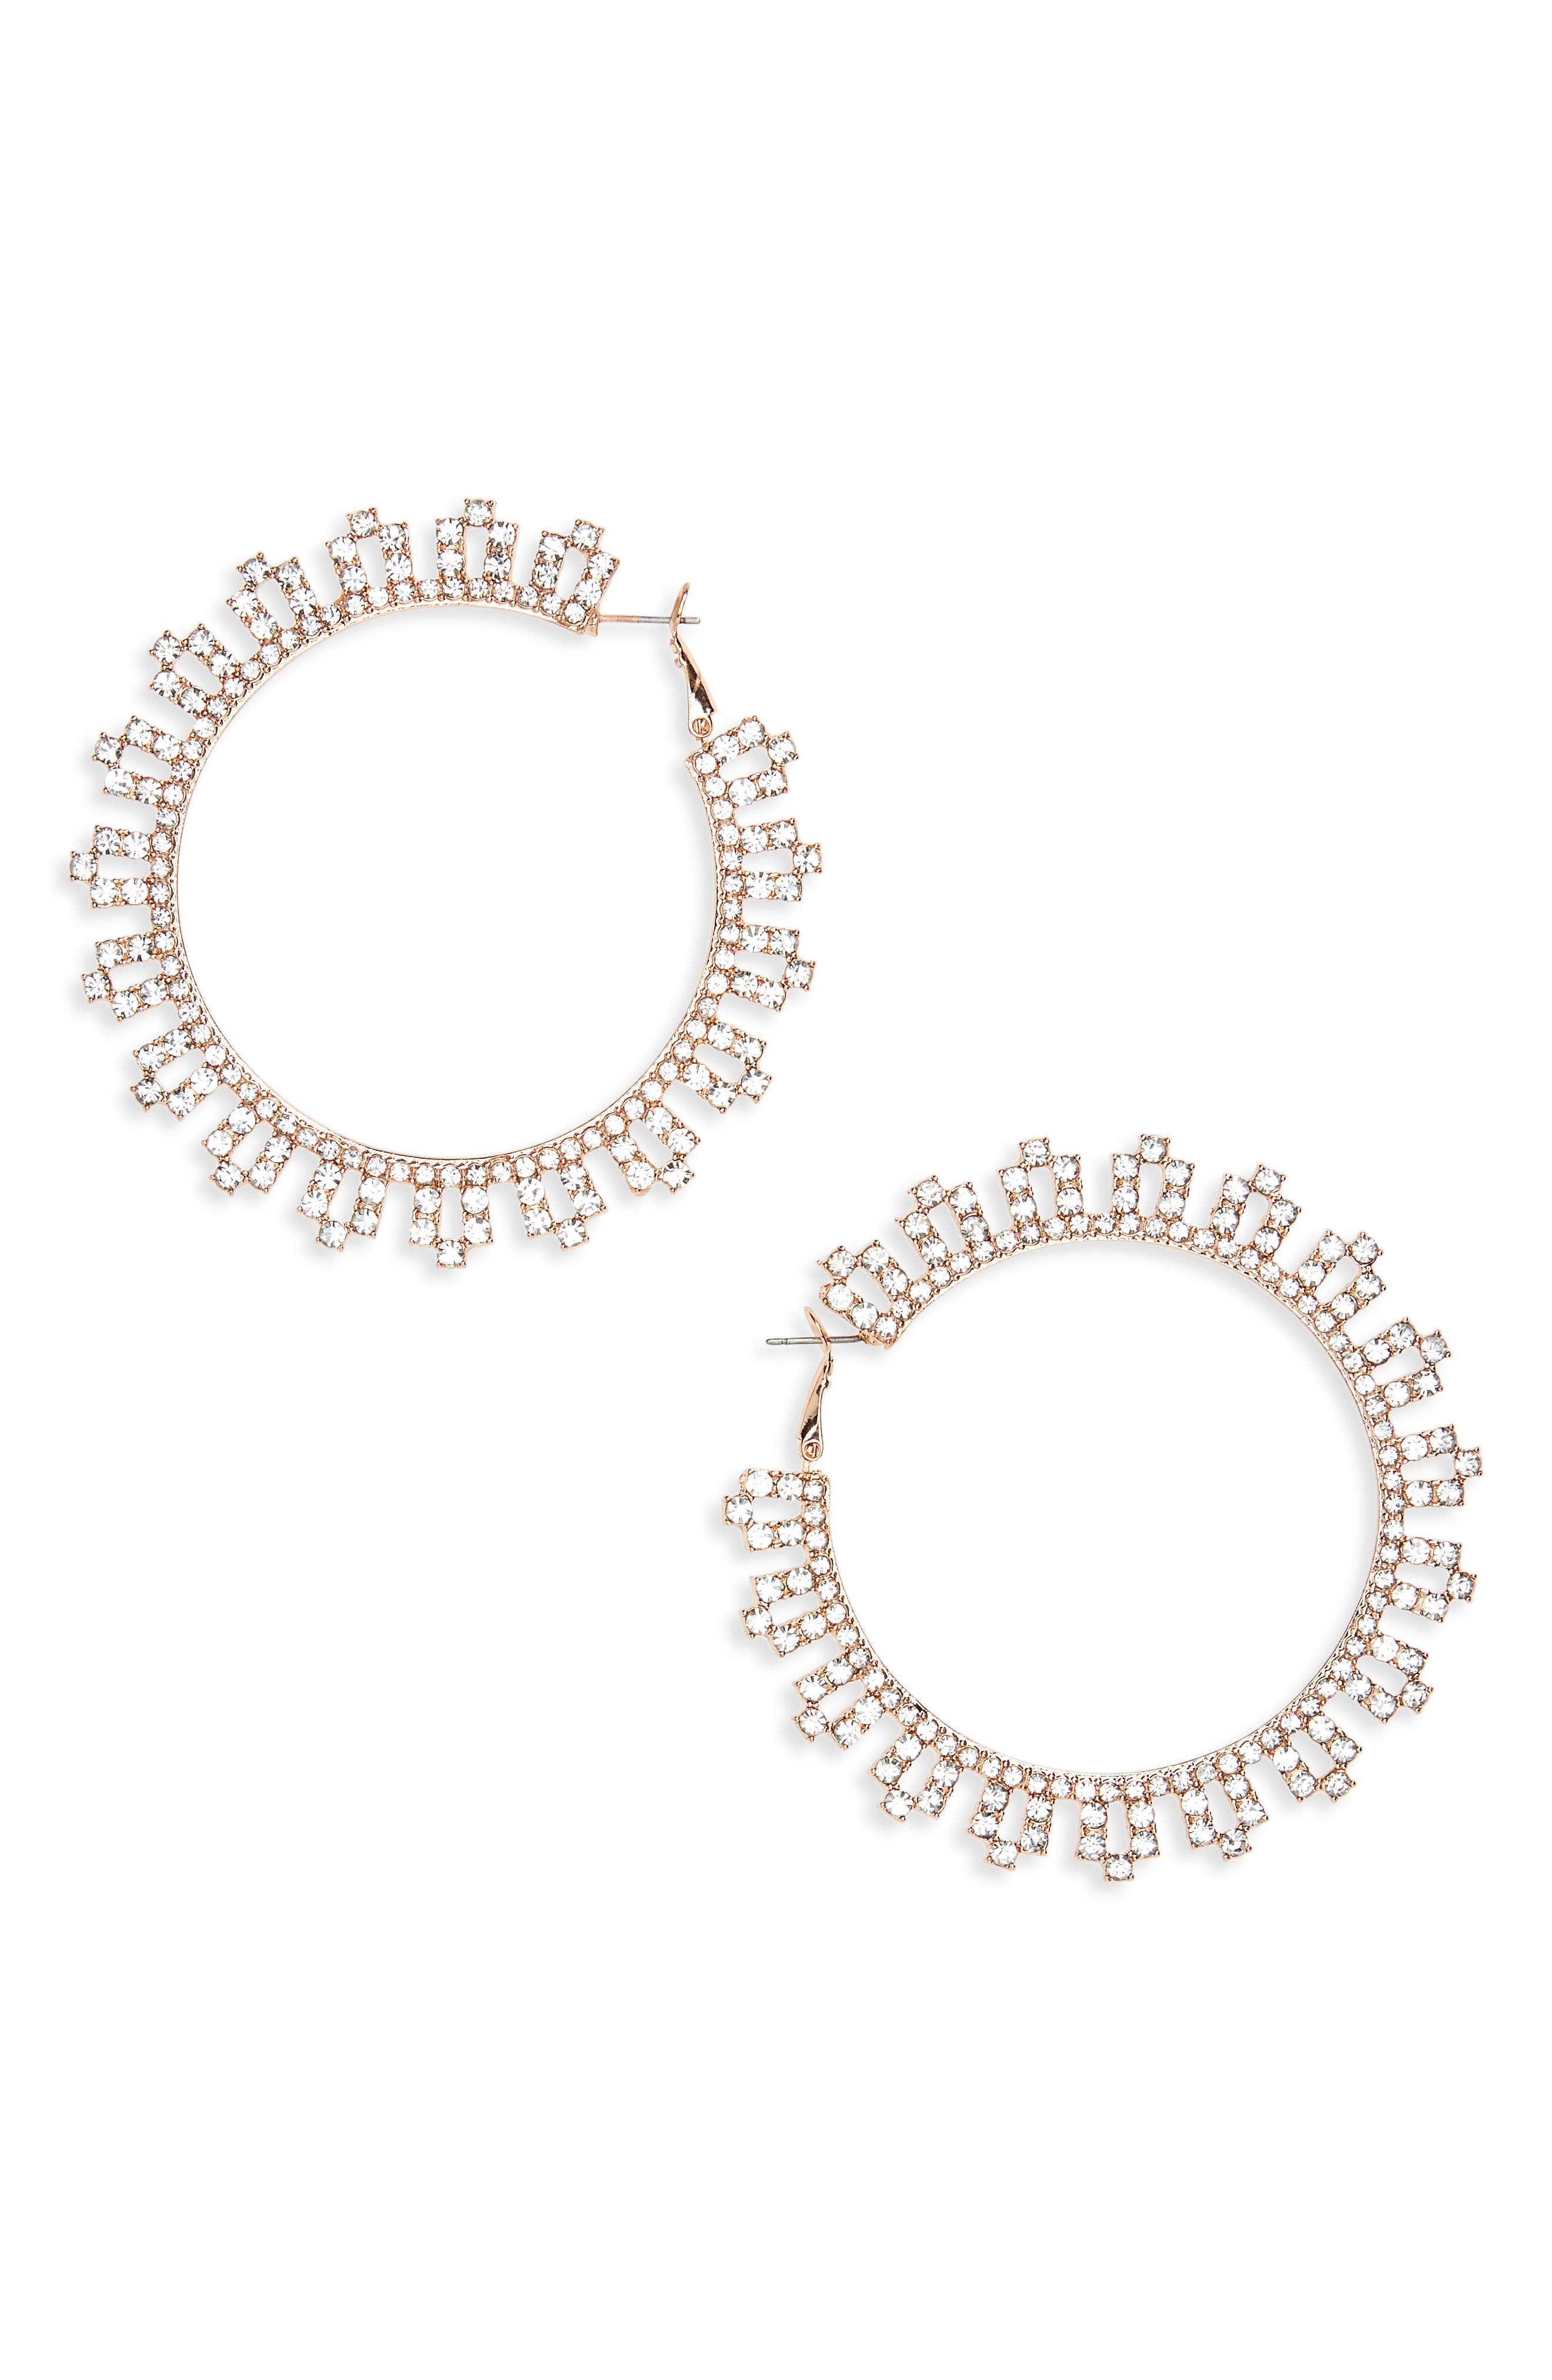 Lace Crystal Statement Earrings,                             Main thumbnail 1, color,                             Crystal/ Rose Gold